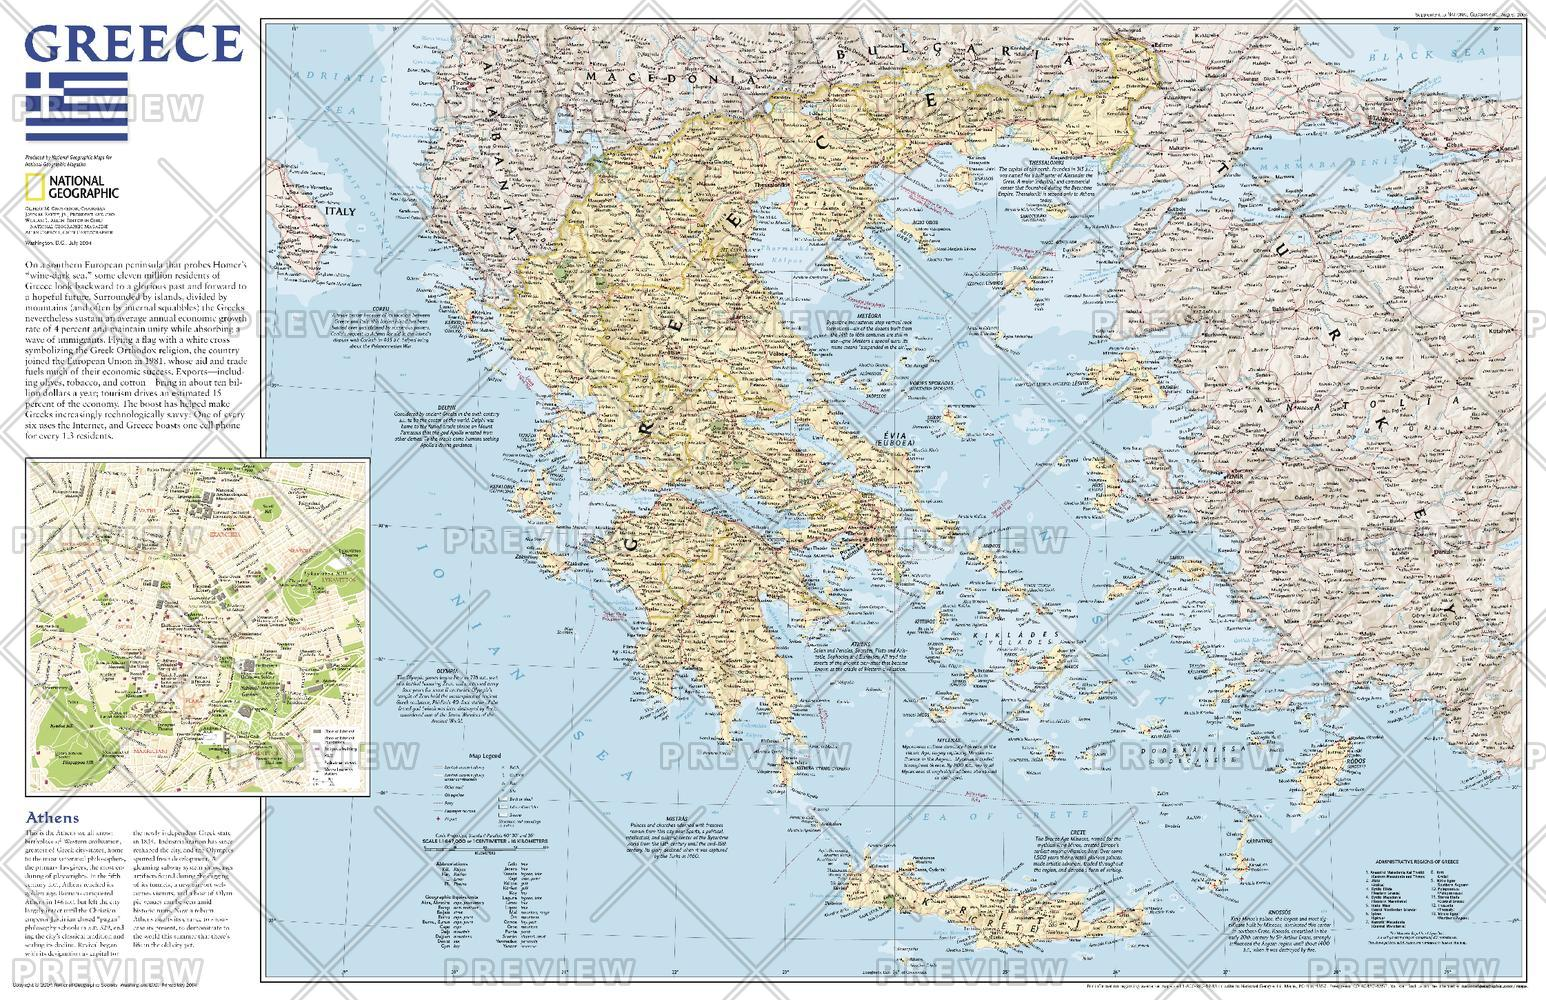 Greece  -  Published 2006